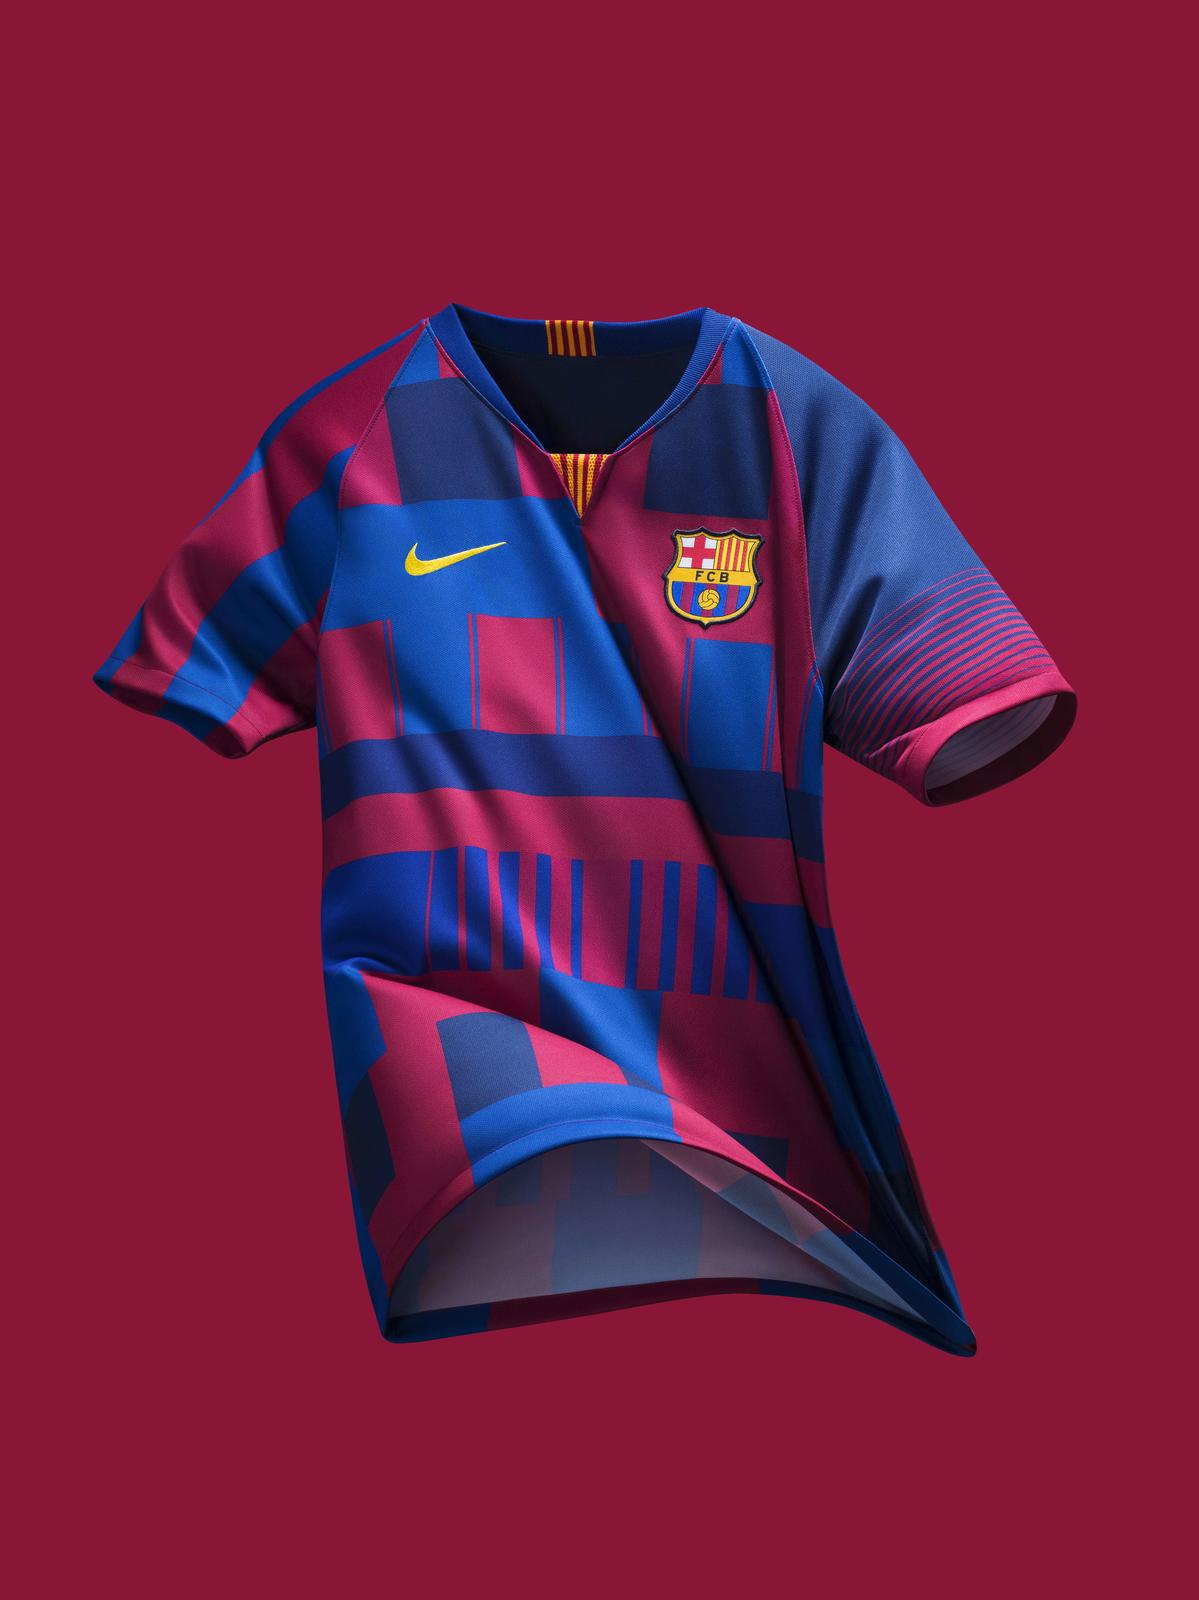 75a2b38d0 FC Barcelona What The 20th Anniversary Jersey - Nike News